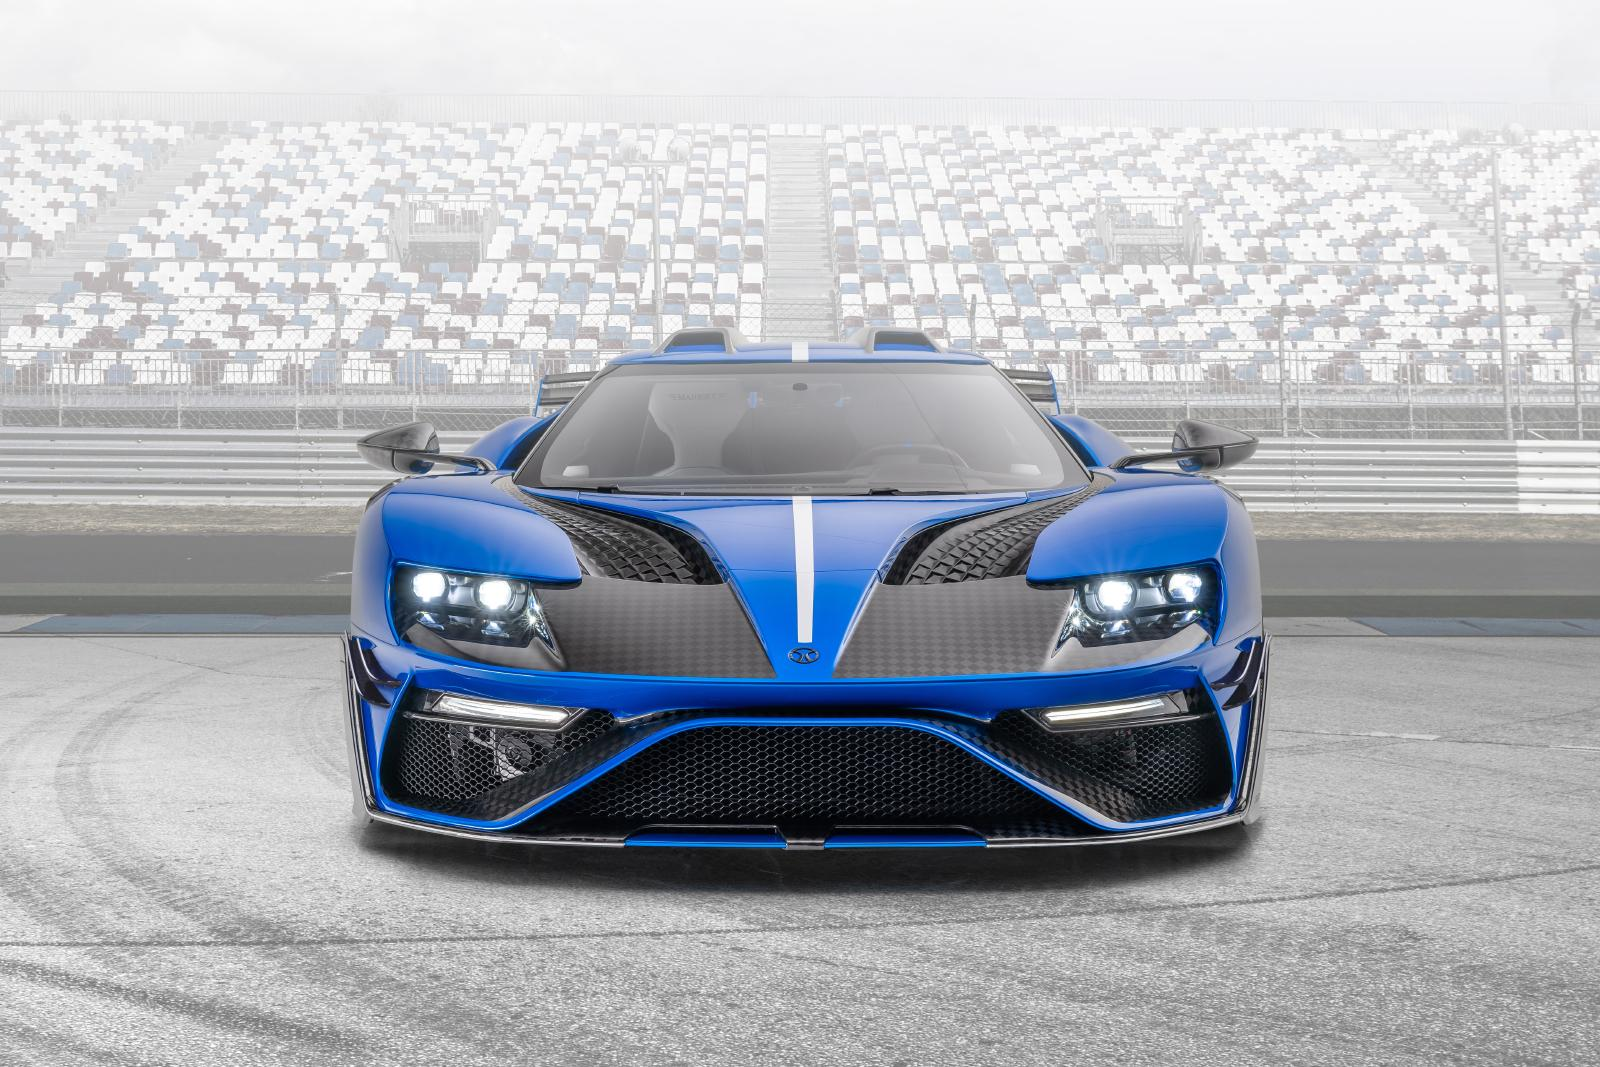 Ford-GT-by-Mansory-Le-Mansory-3